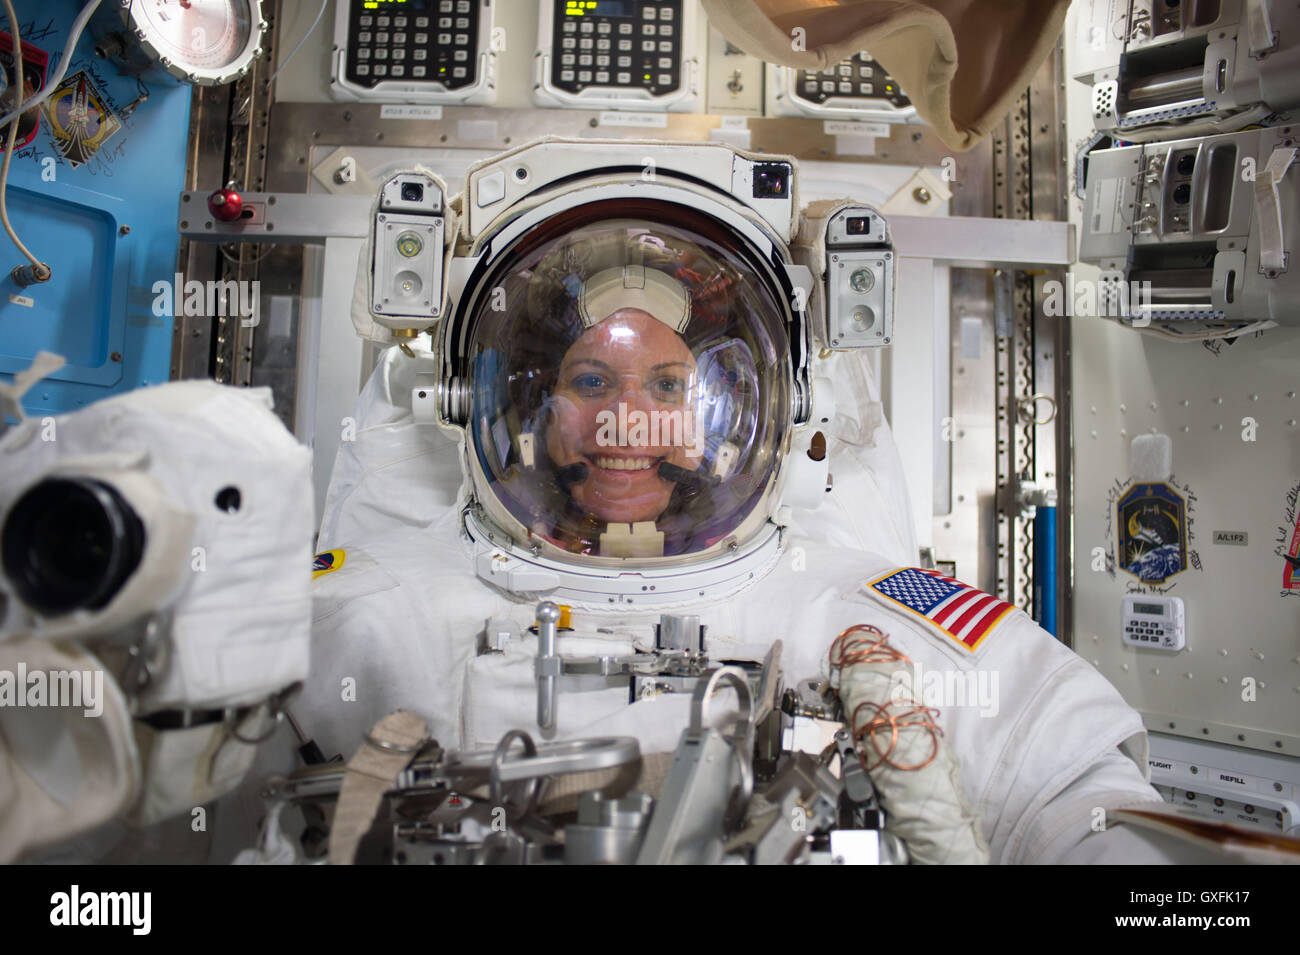 International Space Station Expedition 48 crew member NASA astronaut Flight Engineer Kate Rubins is pictured after - Stock Image